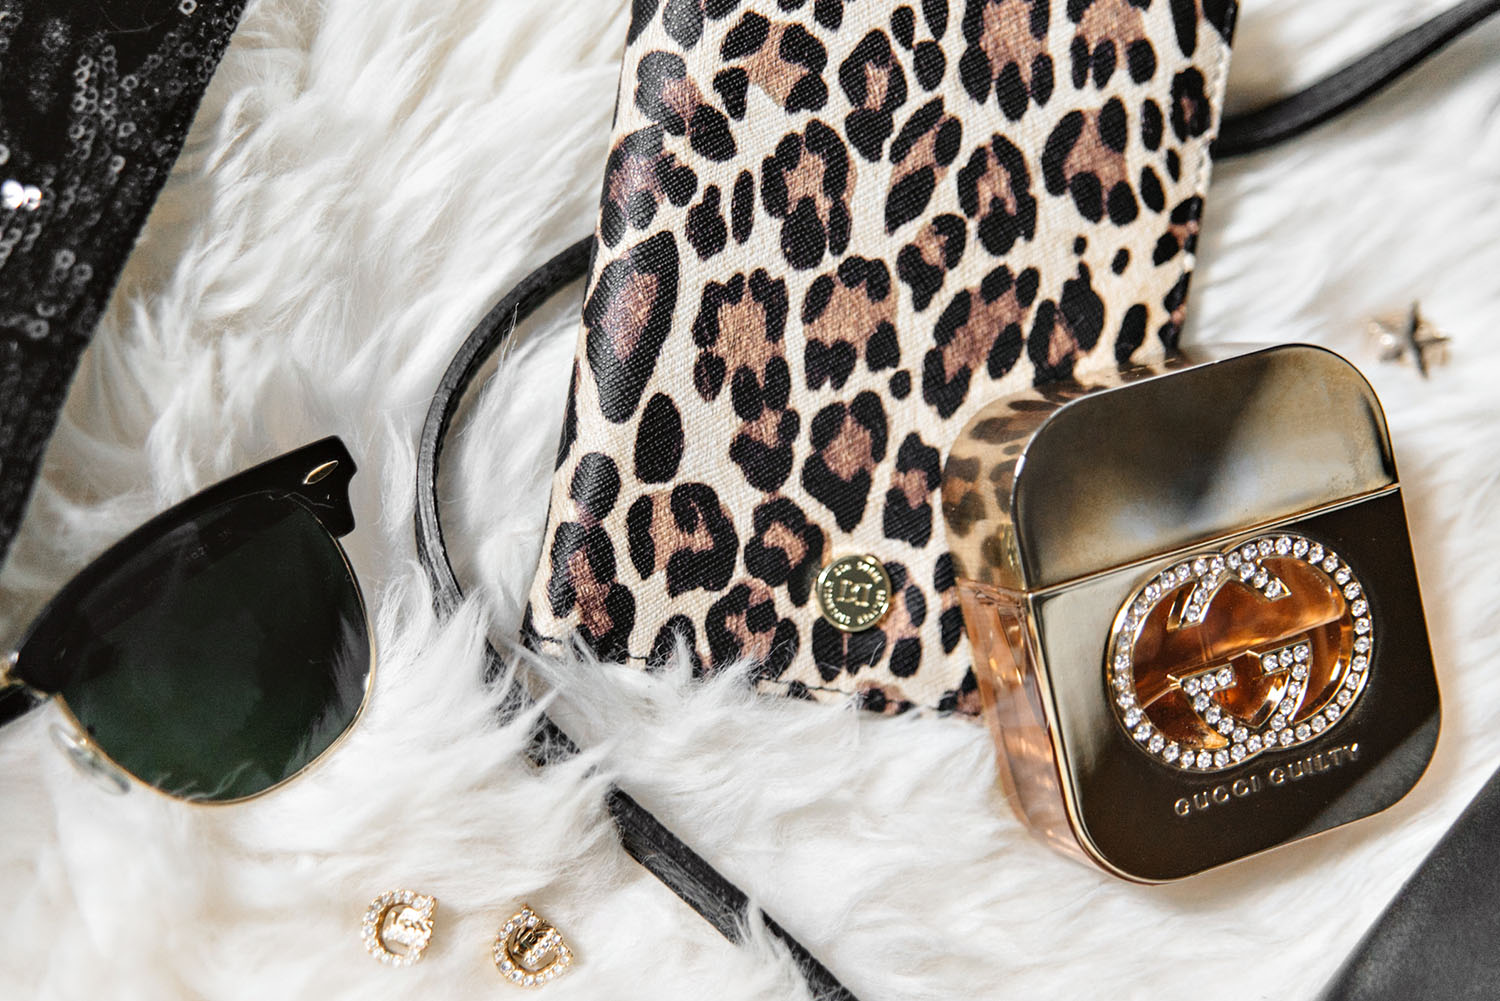 Gucci Guilty and Leopard Passport Cover